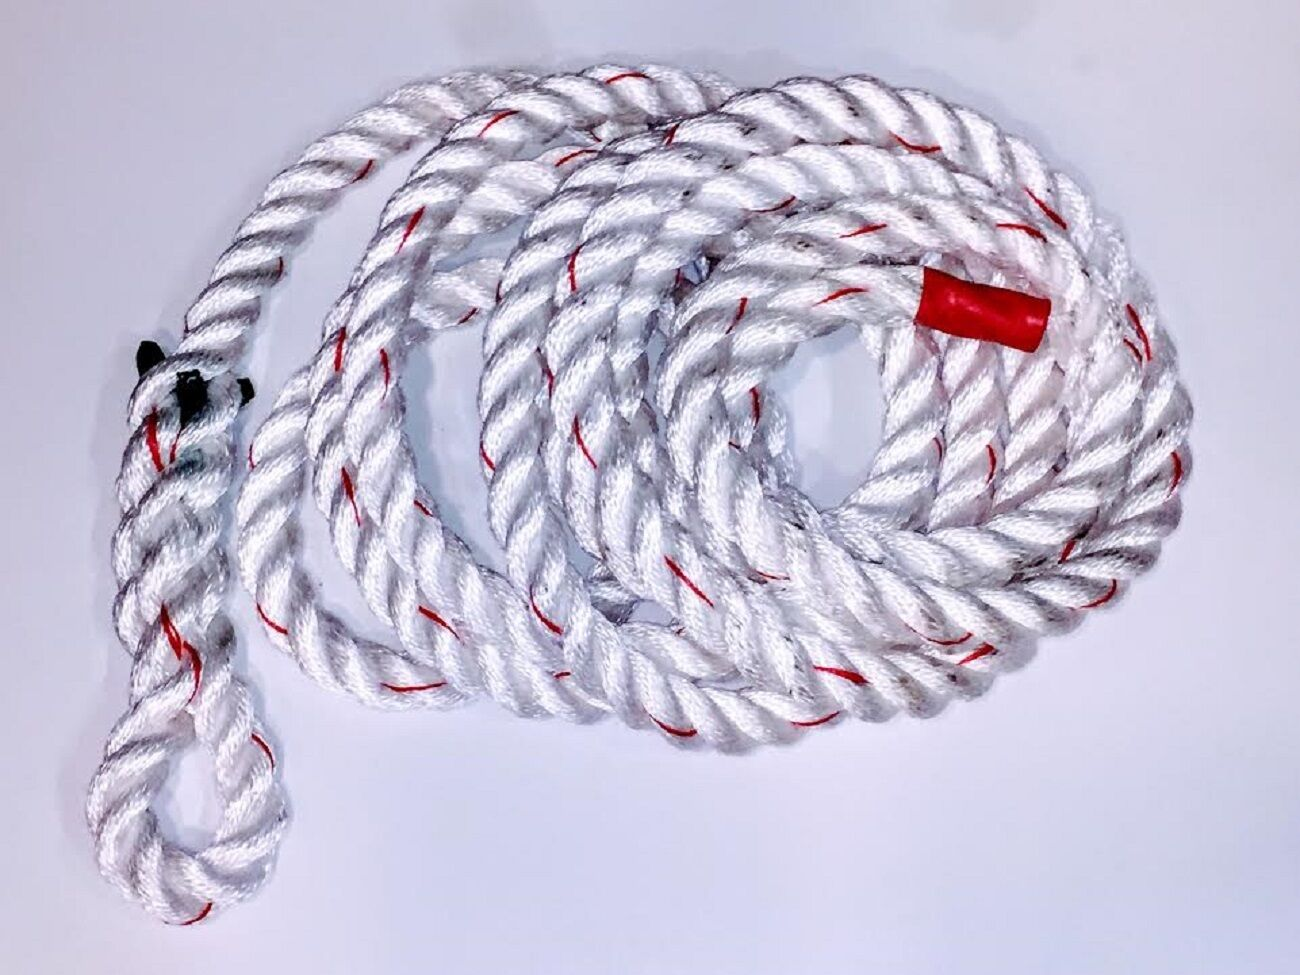 Rope Fit Poly Dacron Gym Climbing Rope 20ft